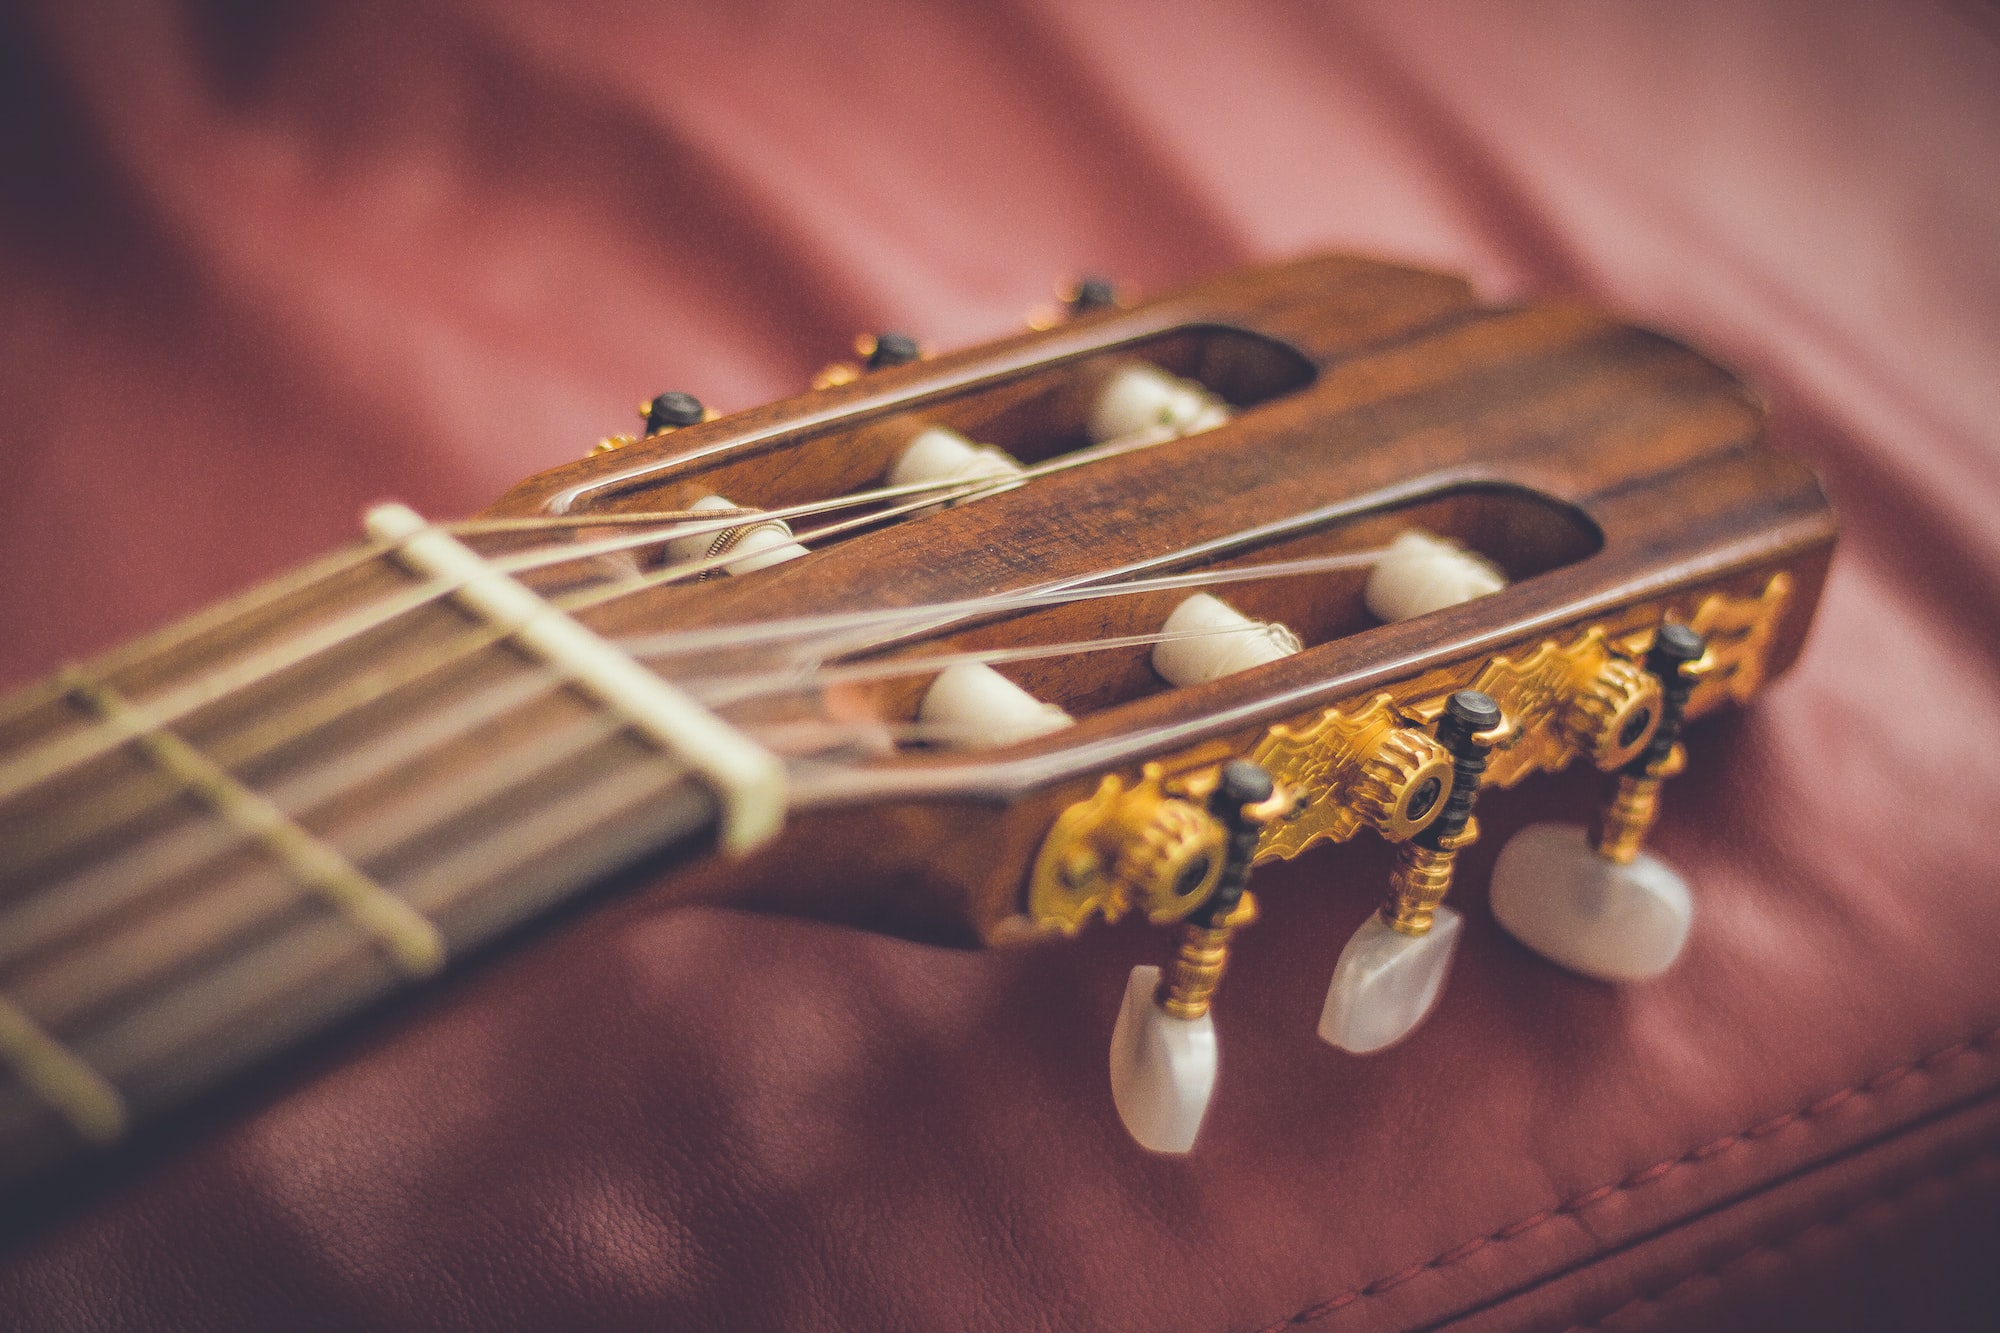 Image result for unsplash guitar images